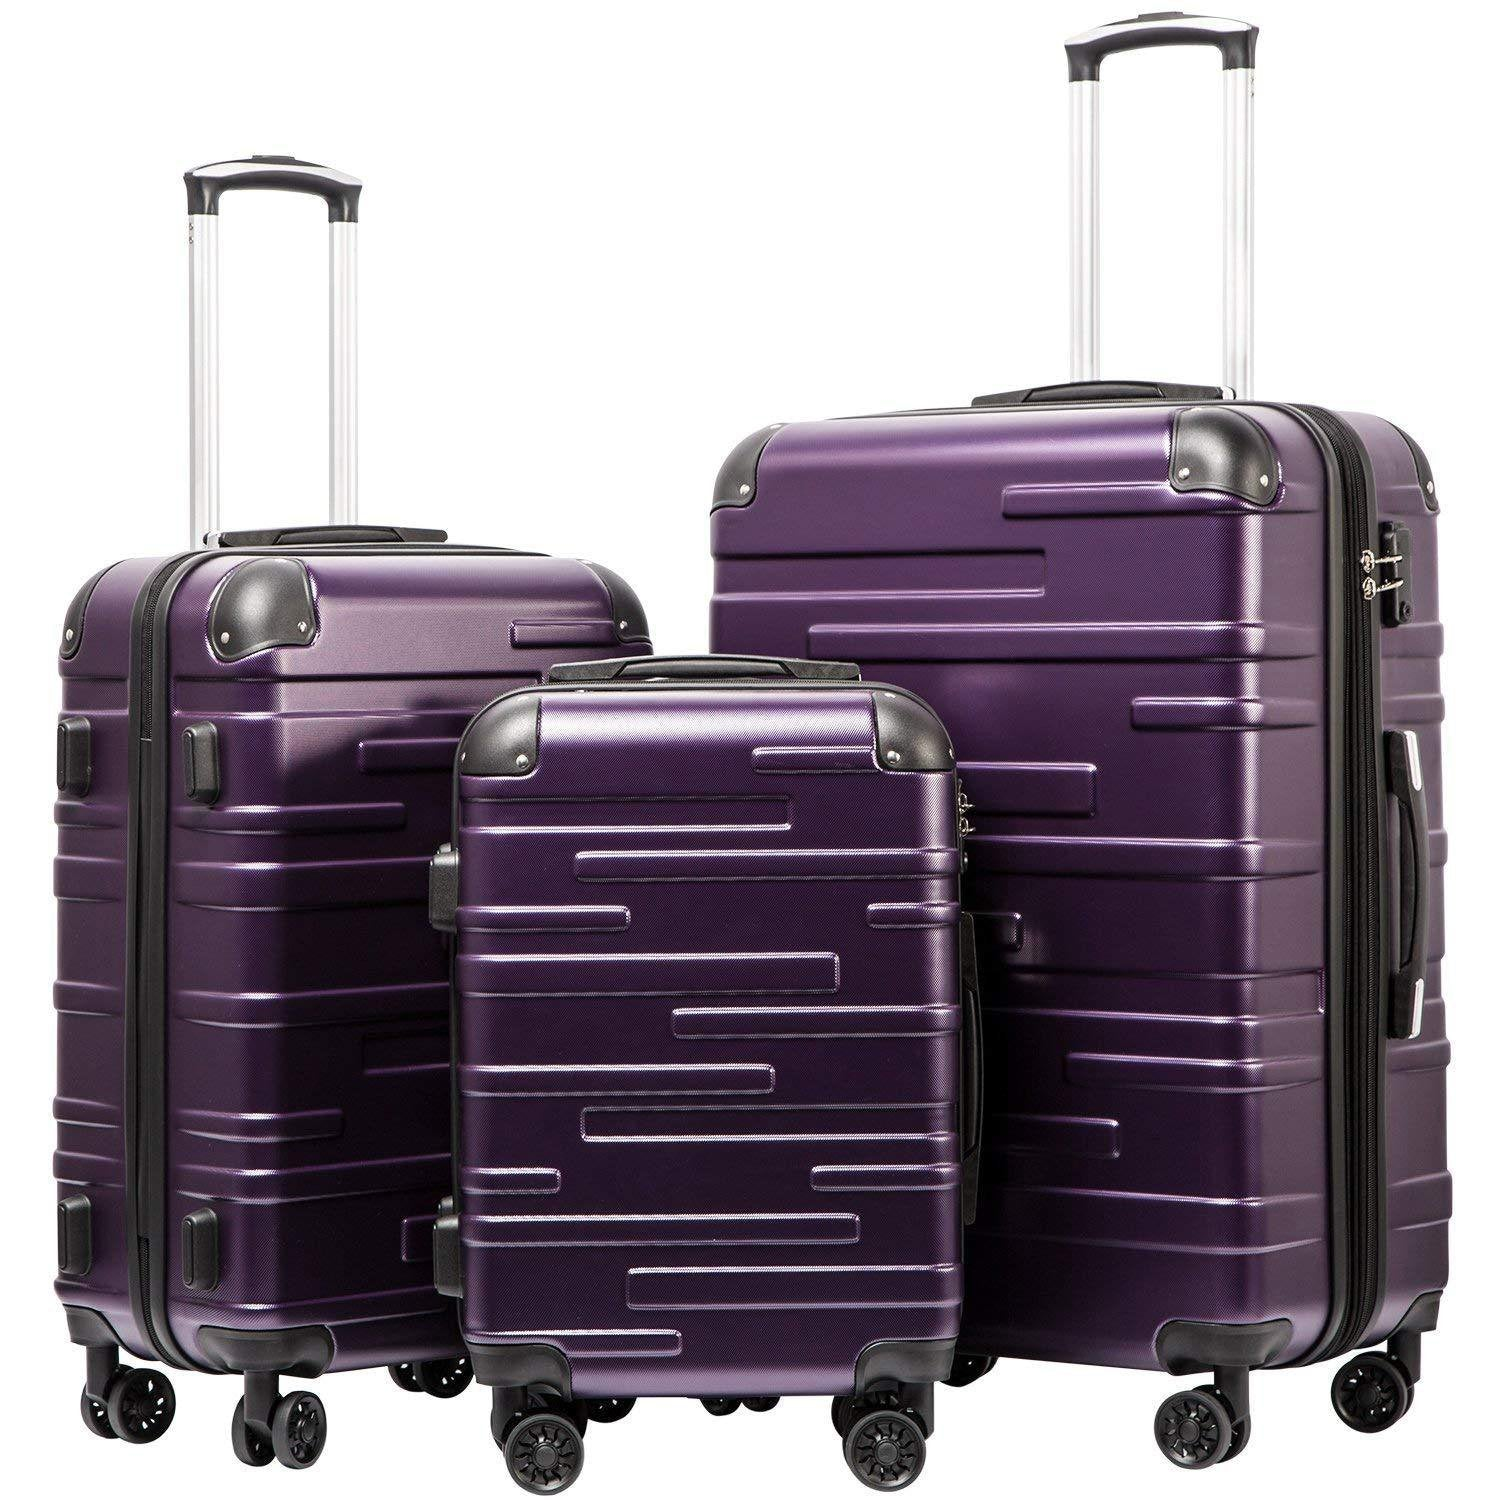 Expandable Suitcase 3 Piece Set(purple)